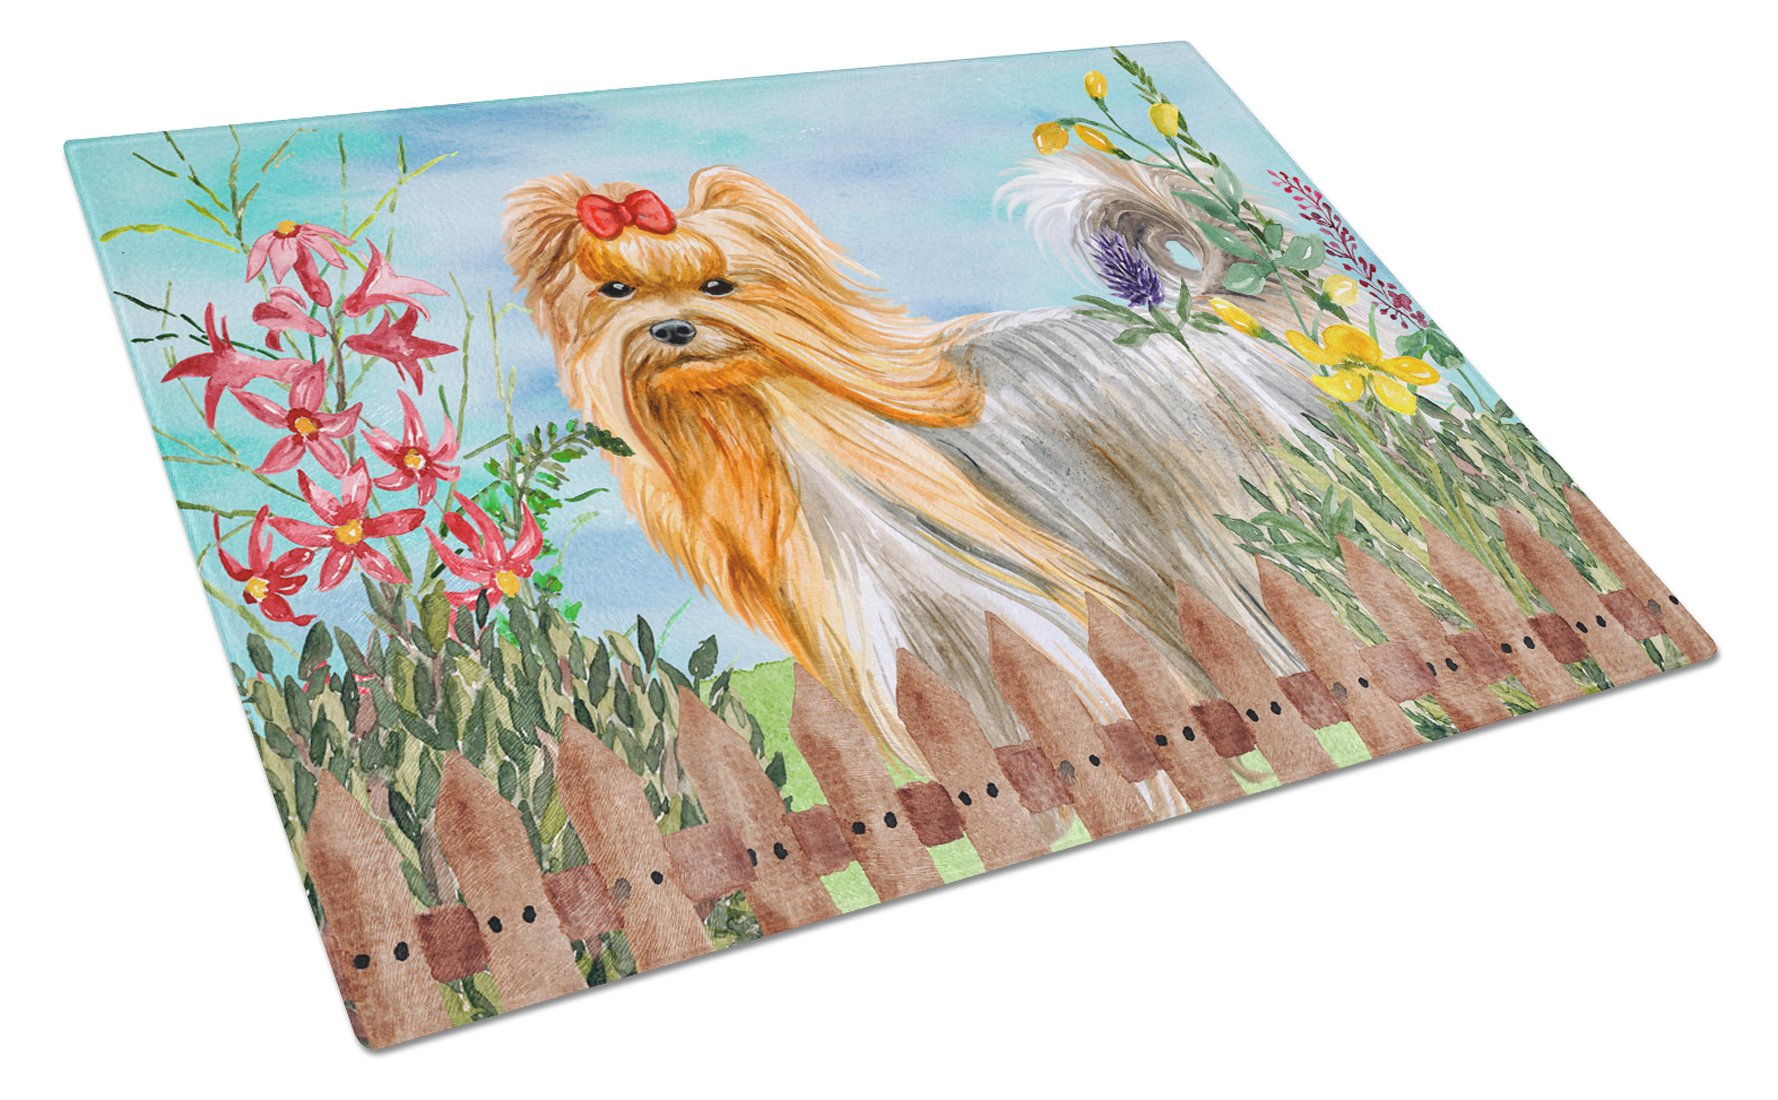 Yorkshire Terrier Spring Glass Cutting Board Large CK1247LCB by Caroline's Treasures